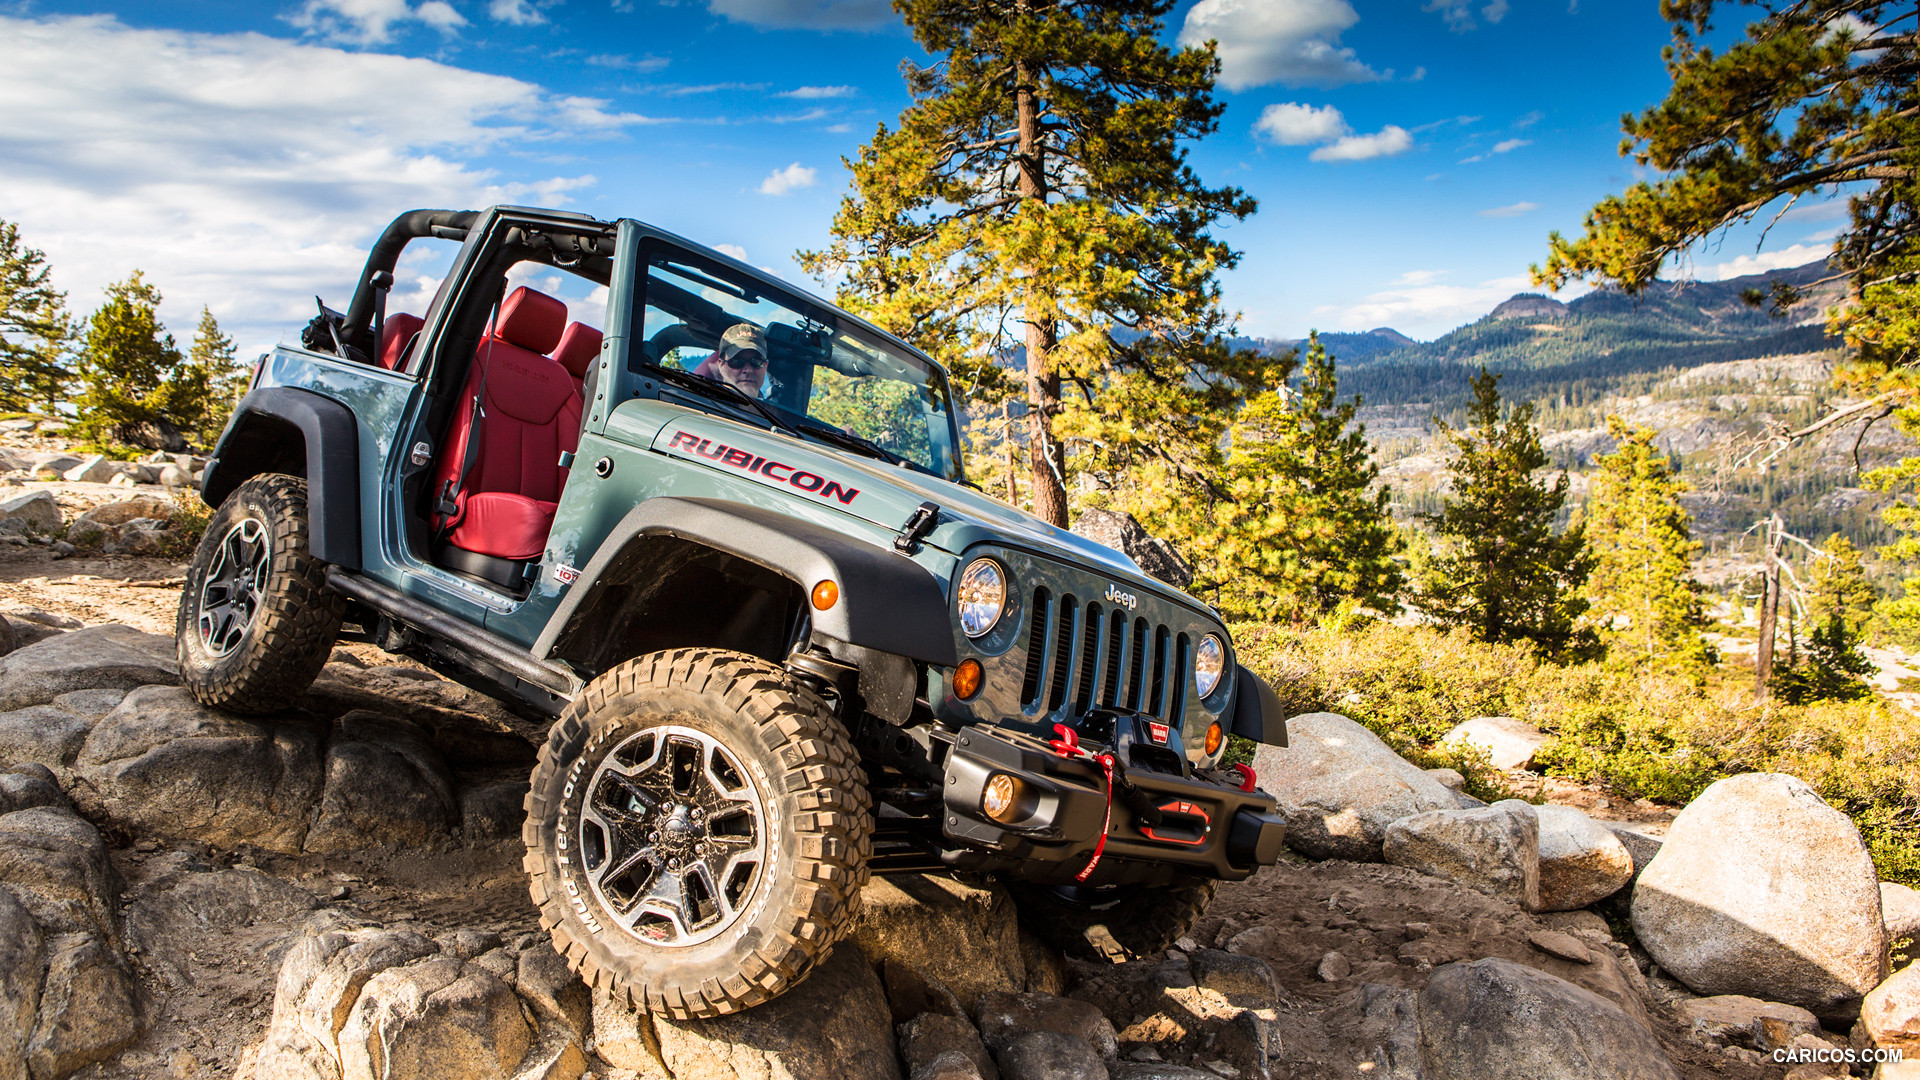 43 Jeep Wrangler Wallpaper Hd On Wallpapersafari